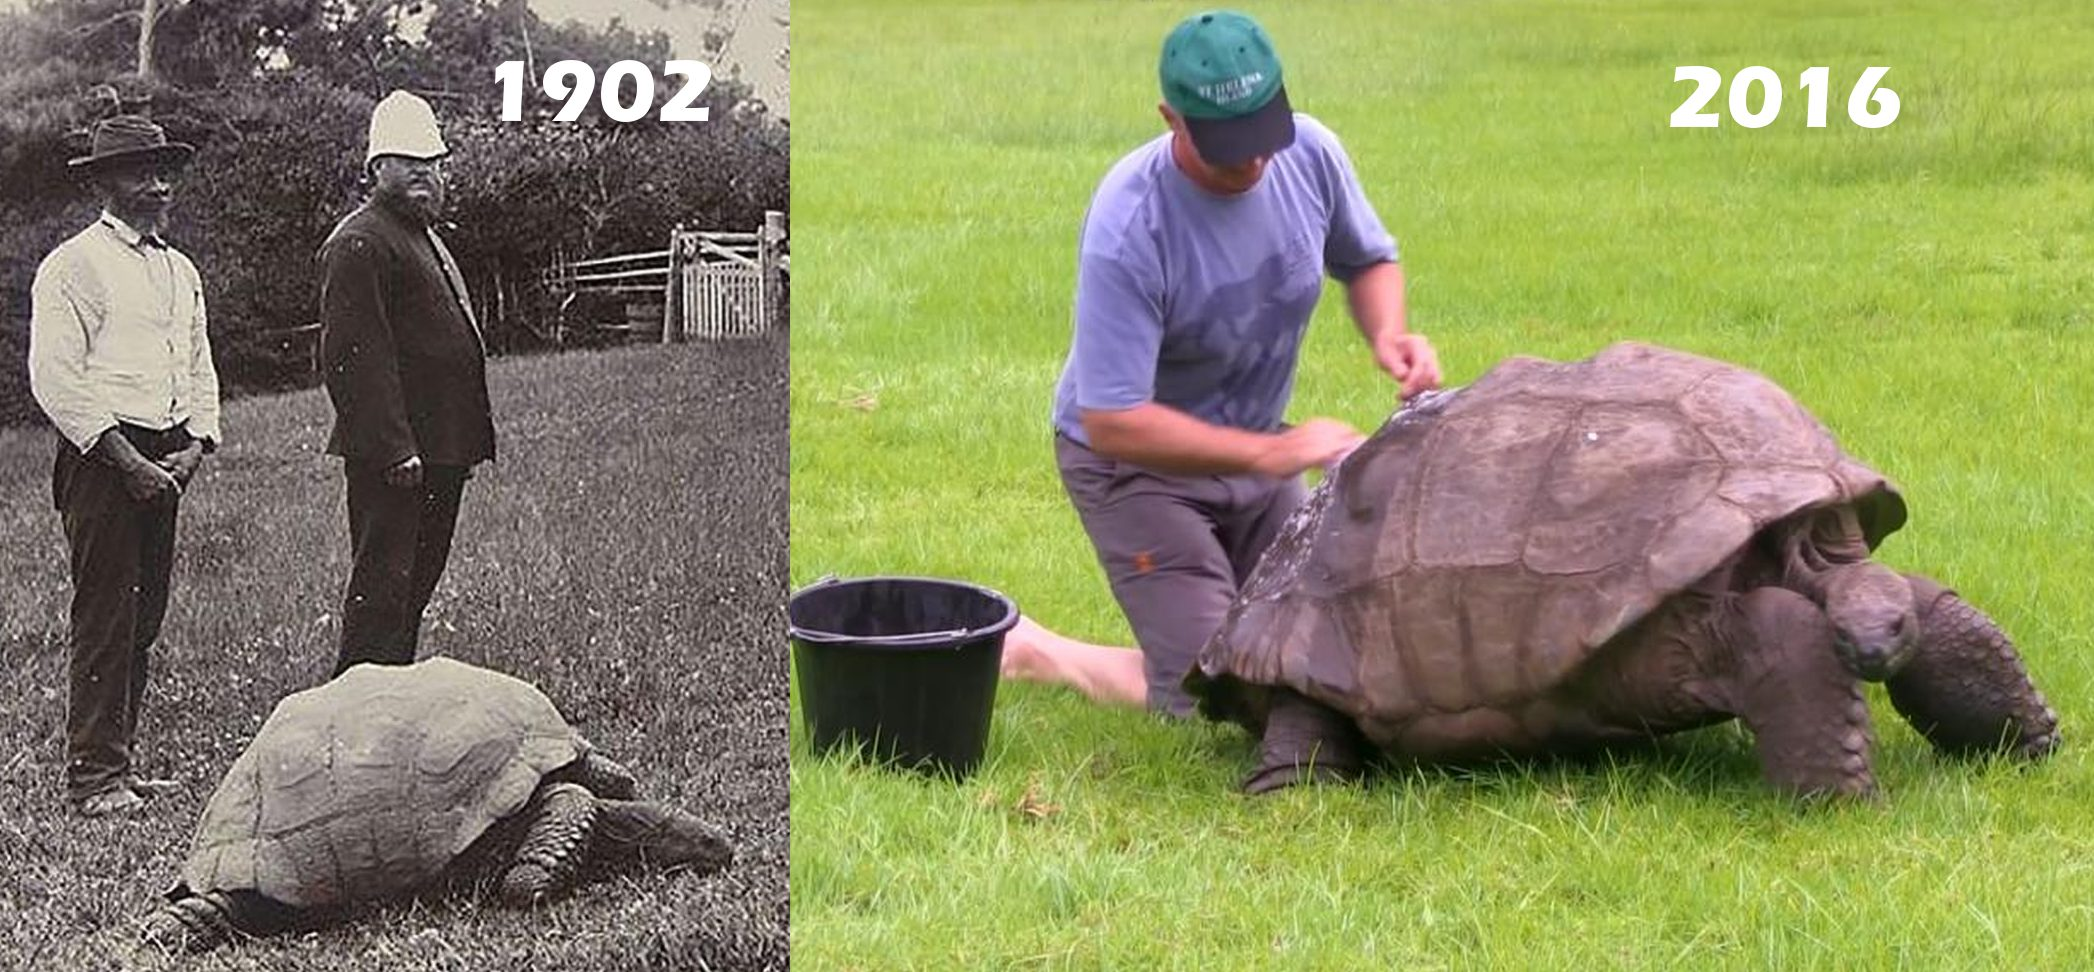 oldest animal jonathan tortoise